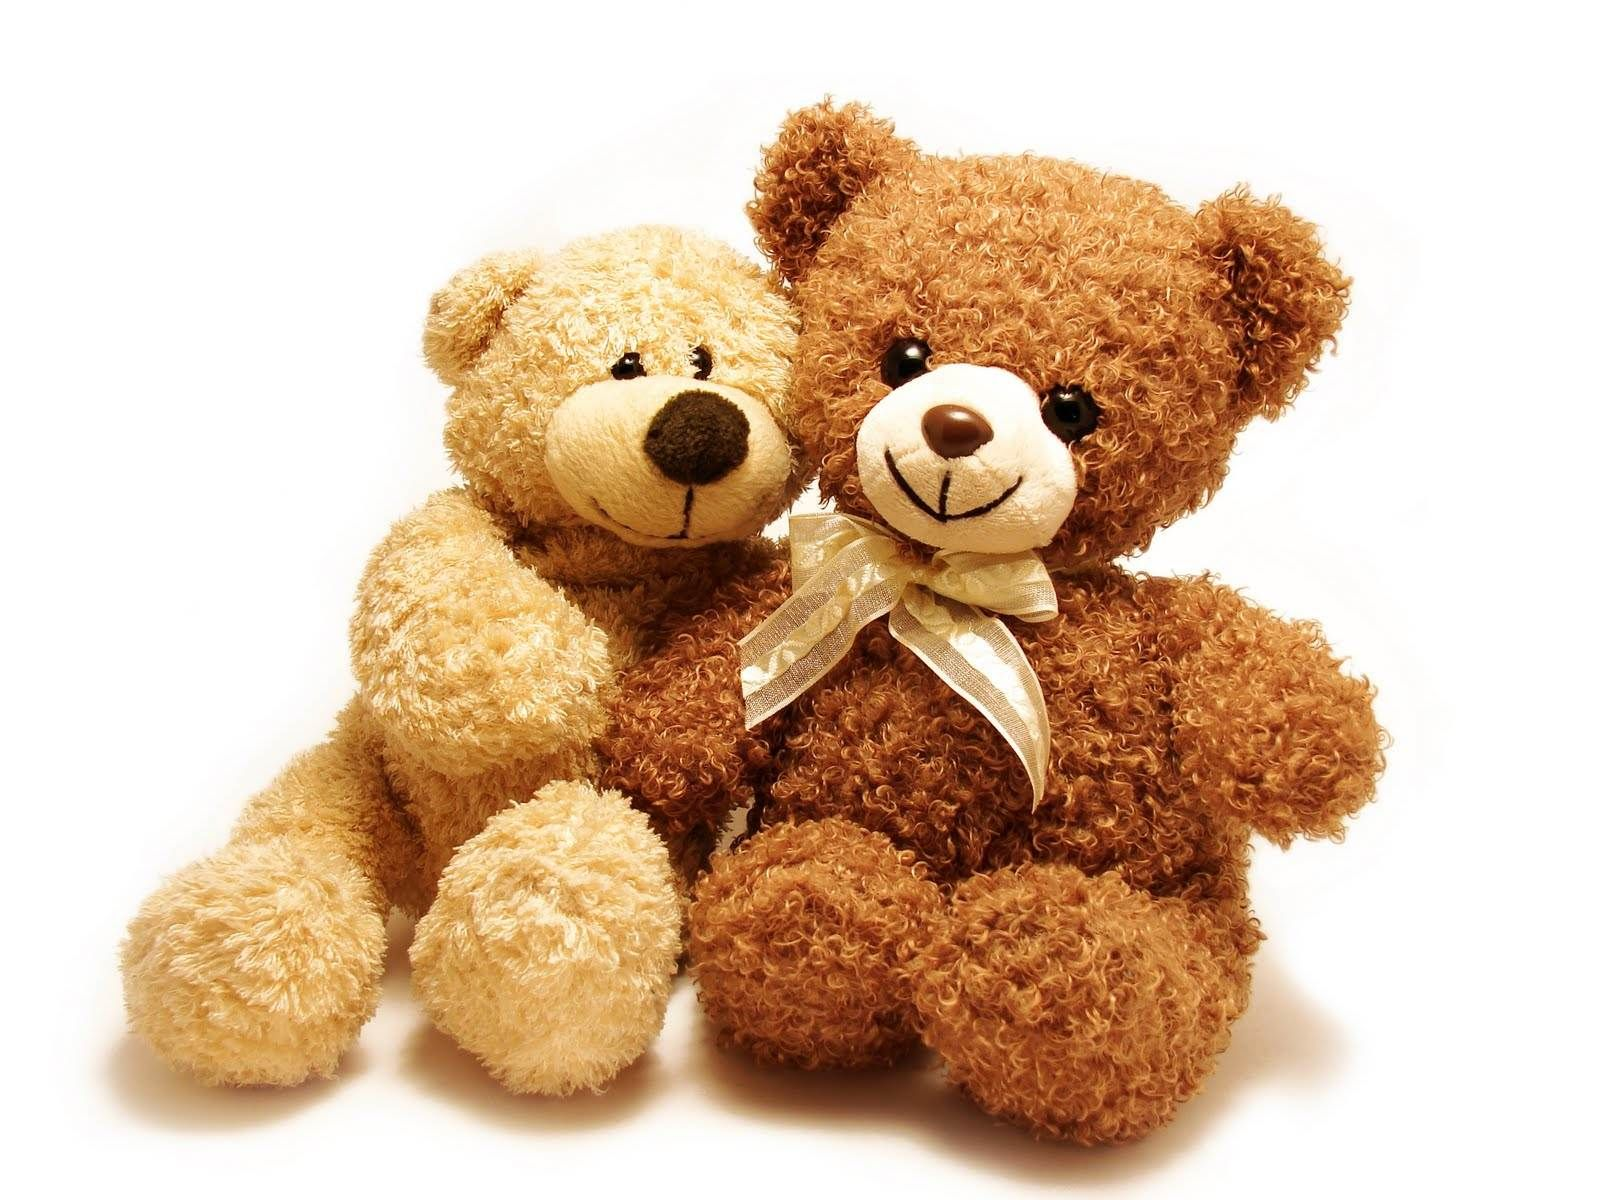 Cute teddy bear pictures hd images free download desktop 16001200 cute teddy bear pictures hd images free download desktop 16001200 picture of teddy bear voltagebd Gallery